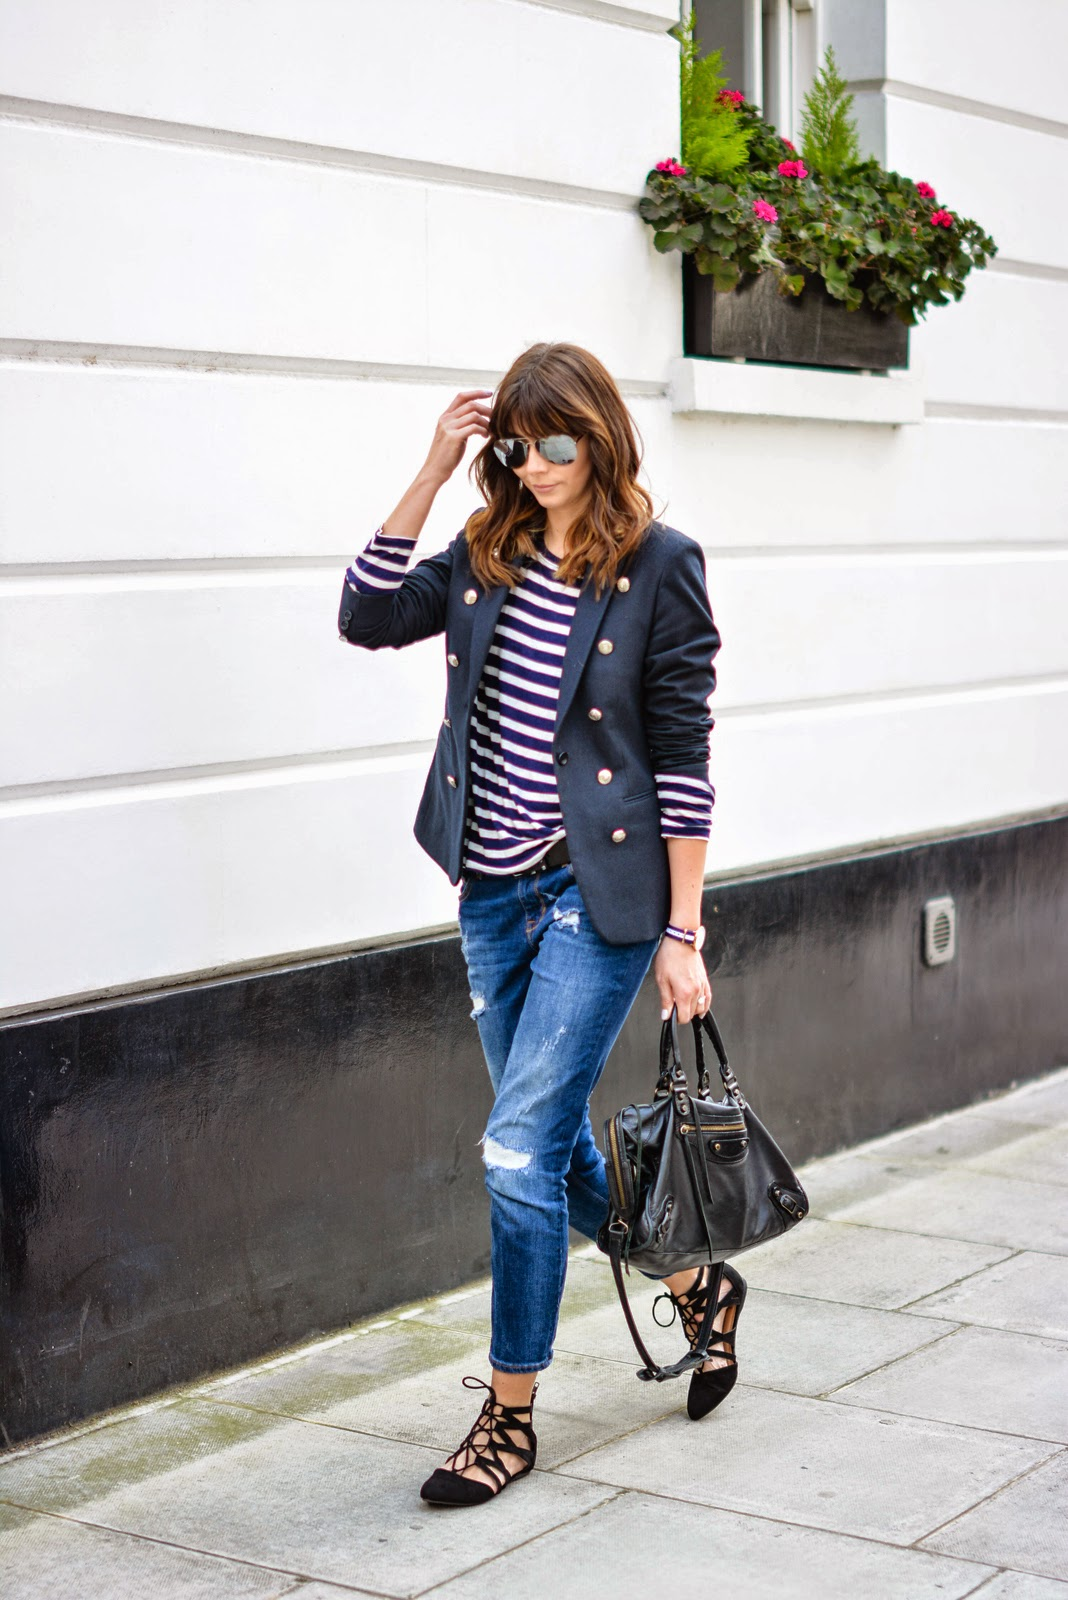 lace up flats look